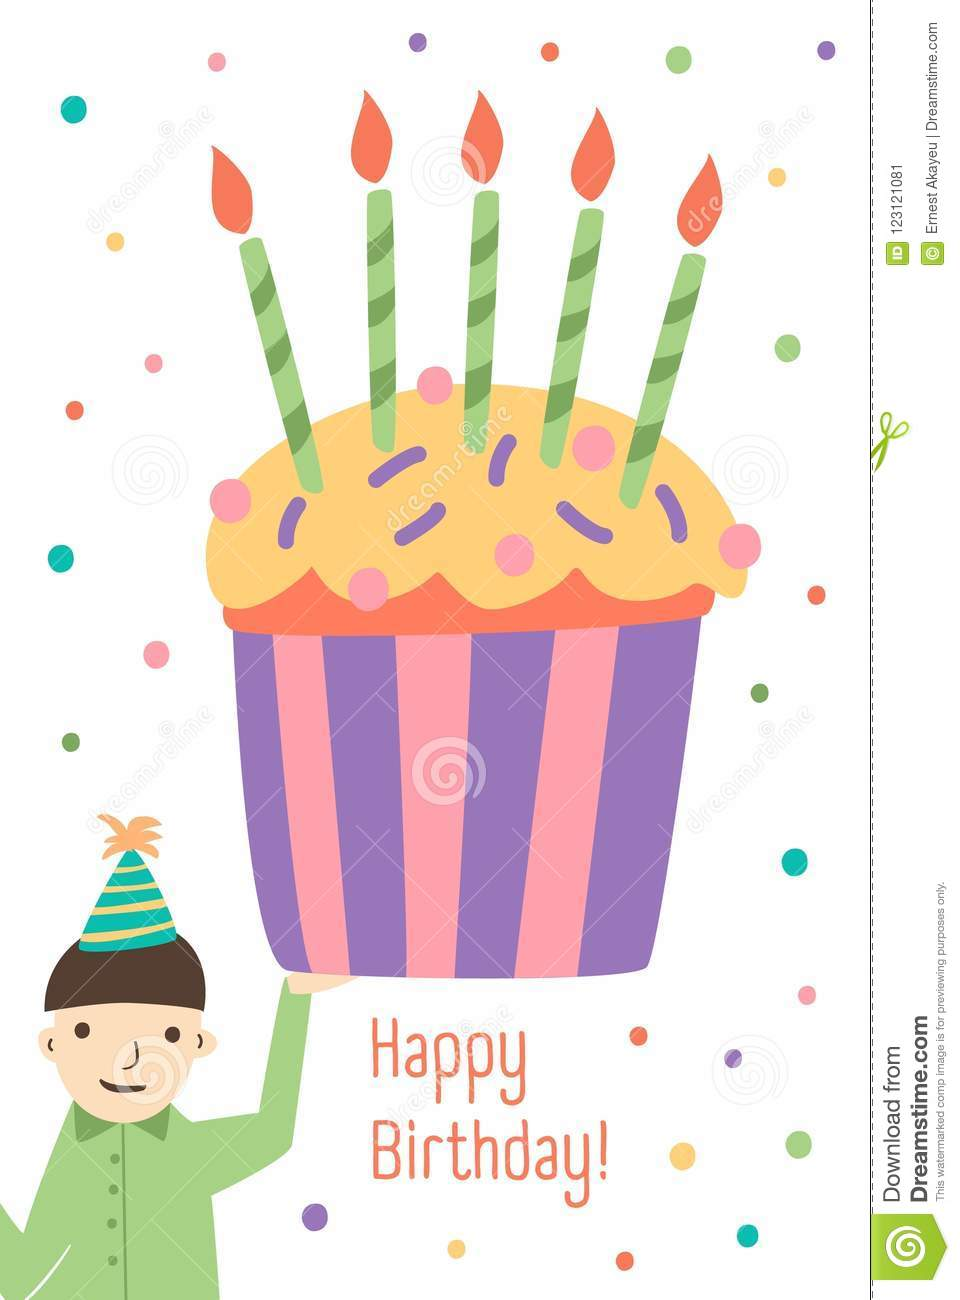 Vertical Greeting Card Template With Happy Birthday Wish Cute Boy Holding Giant Cupcake Decorated Candles And Colorful Festive Confetti On Background